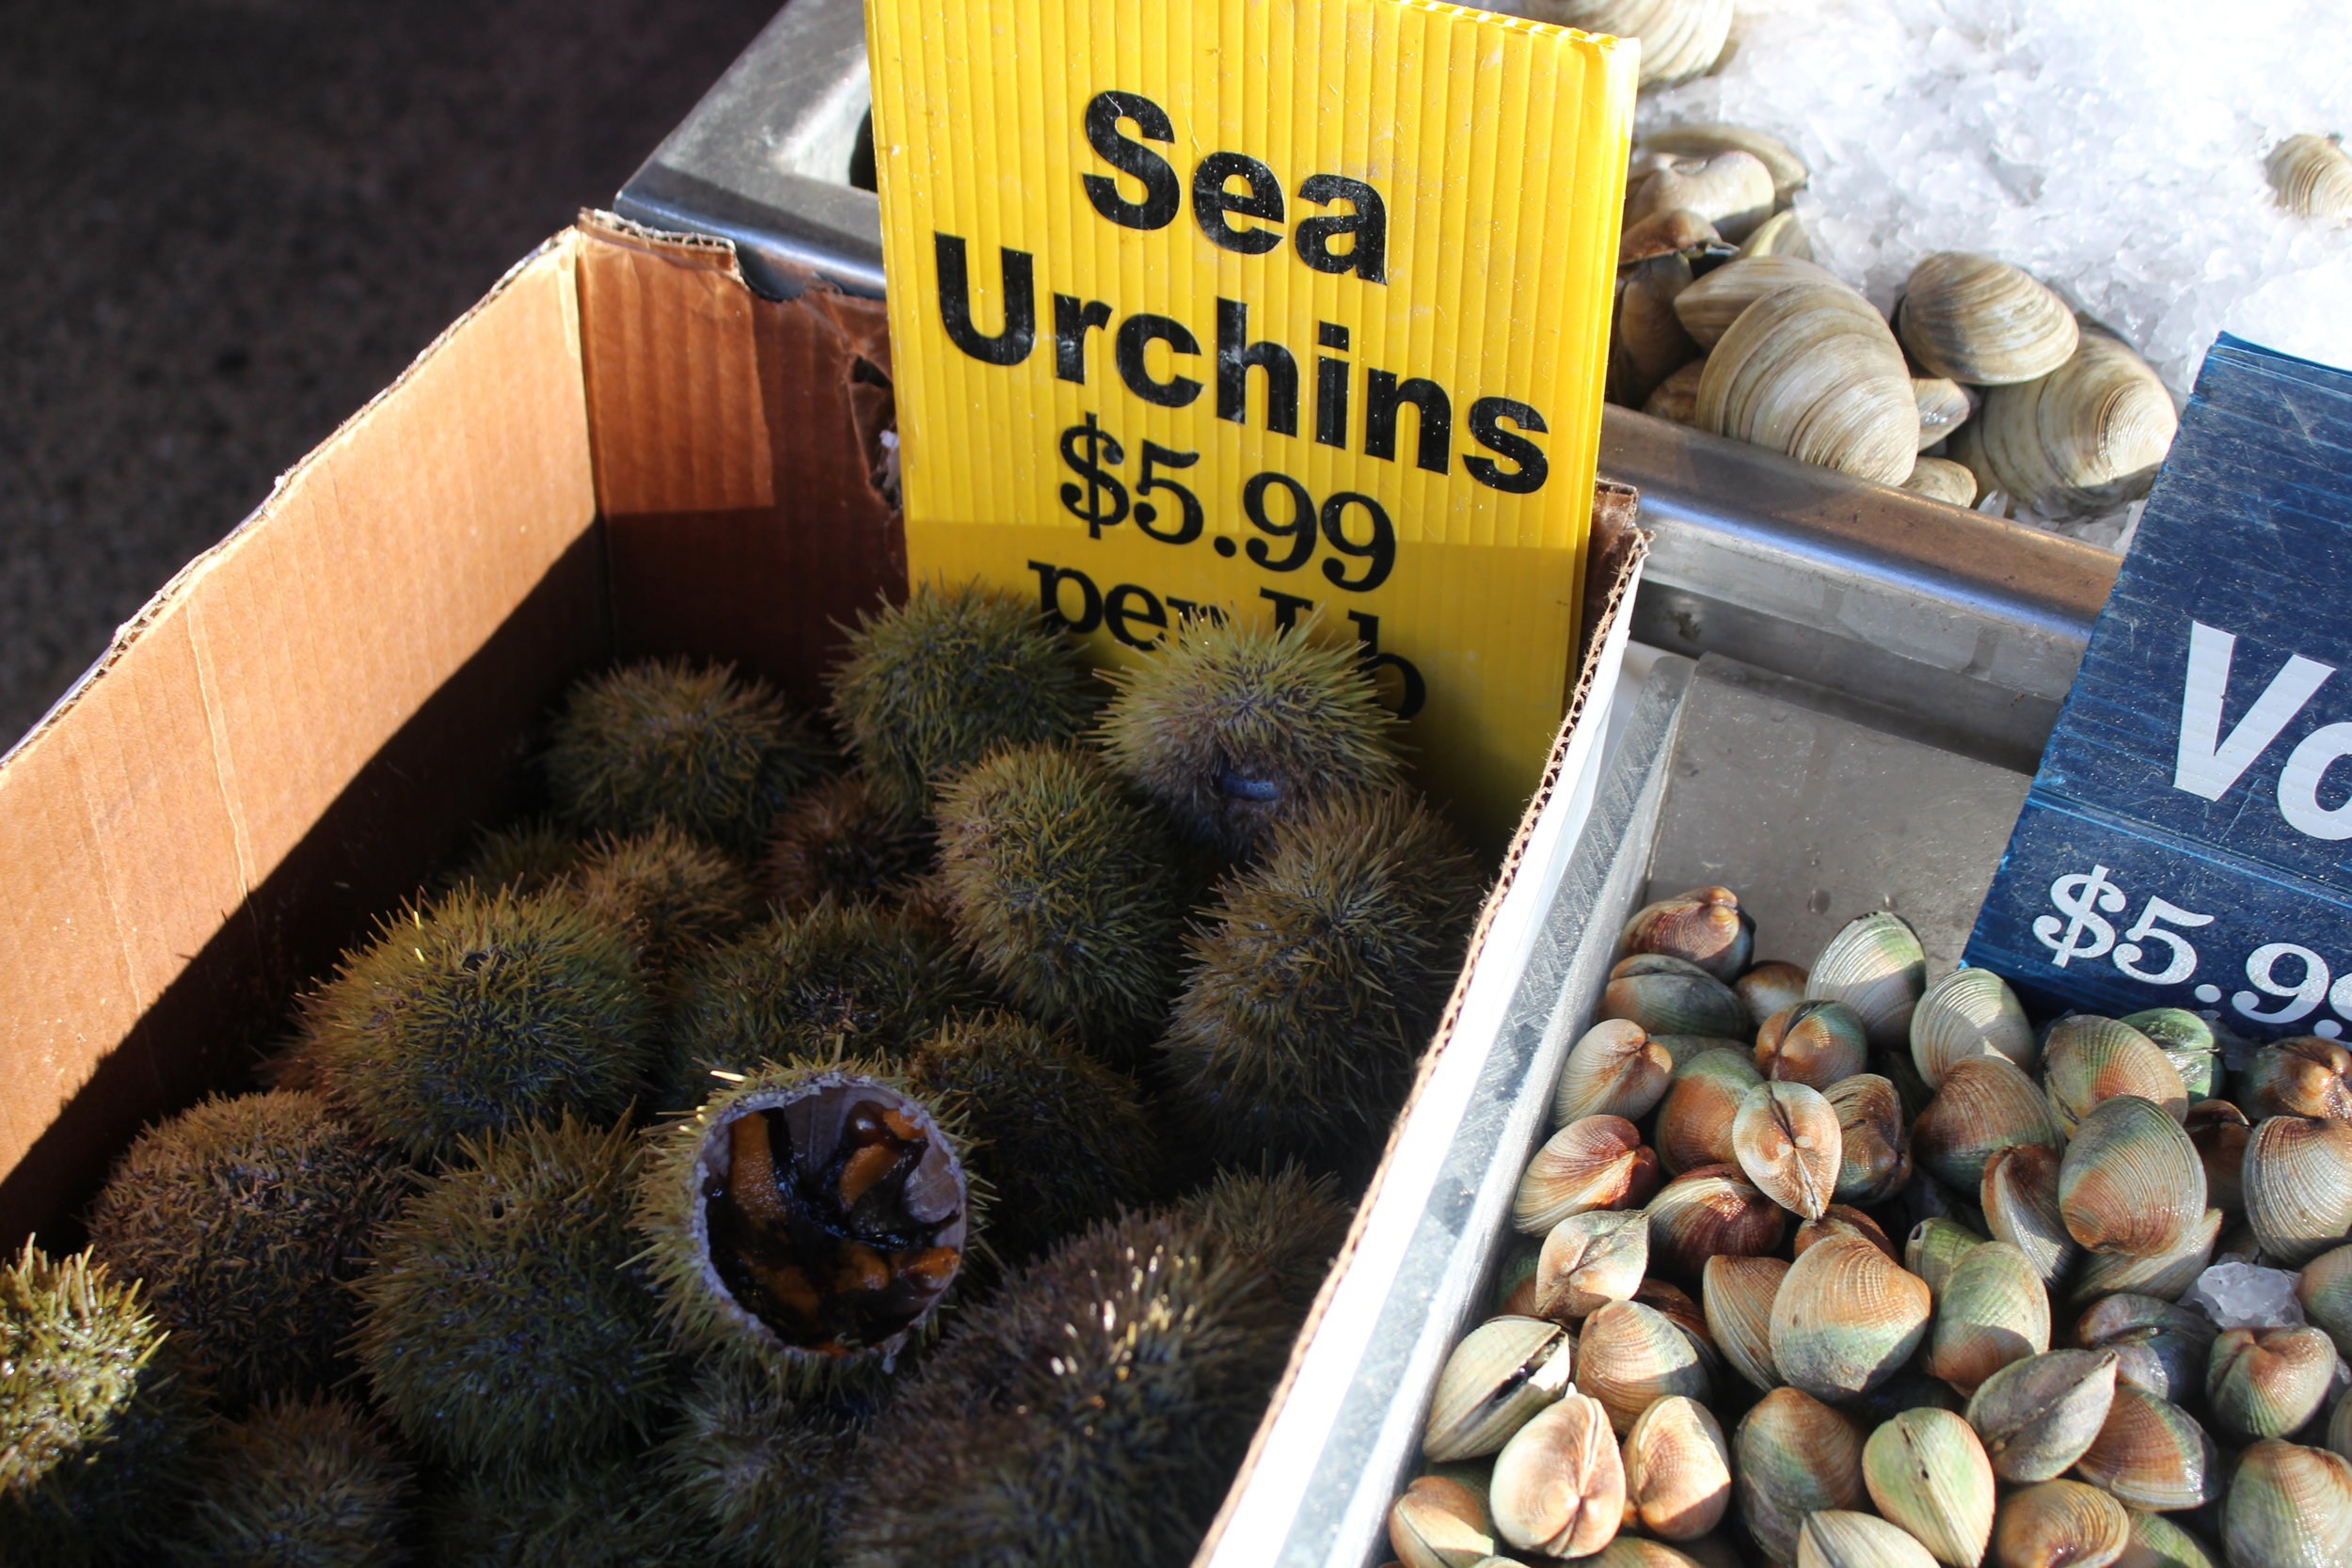 Sea urchins or ricci for sale at Cosenza's Fish Market